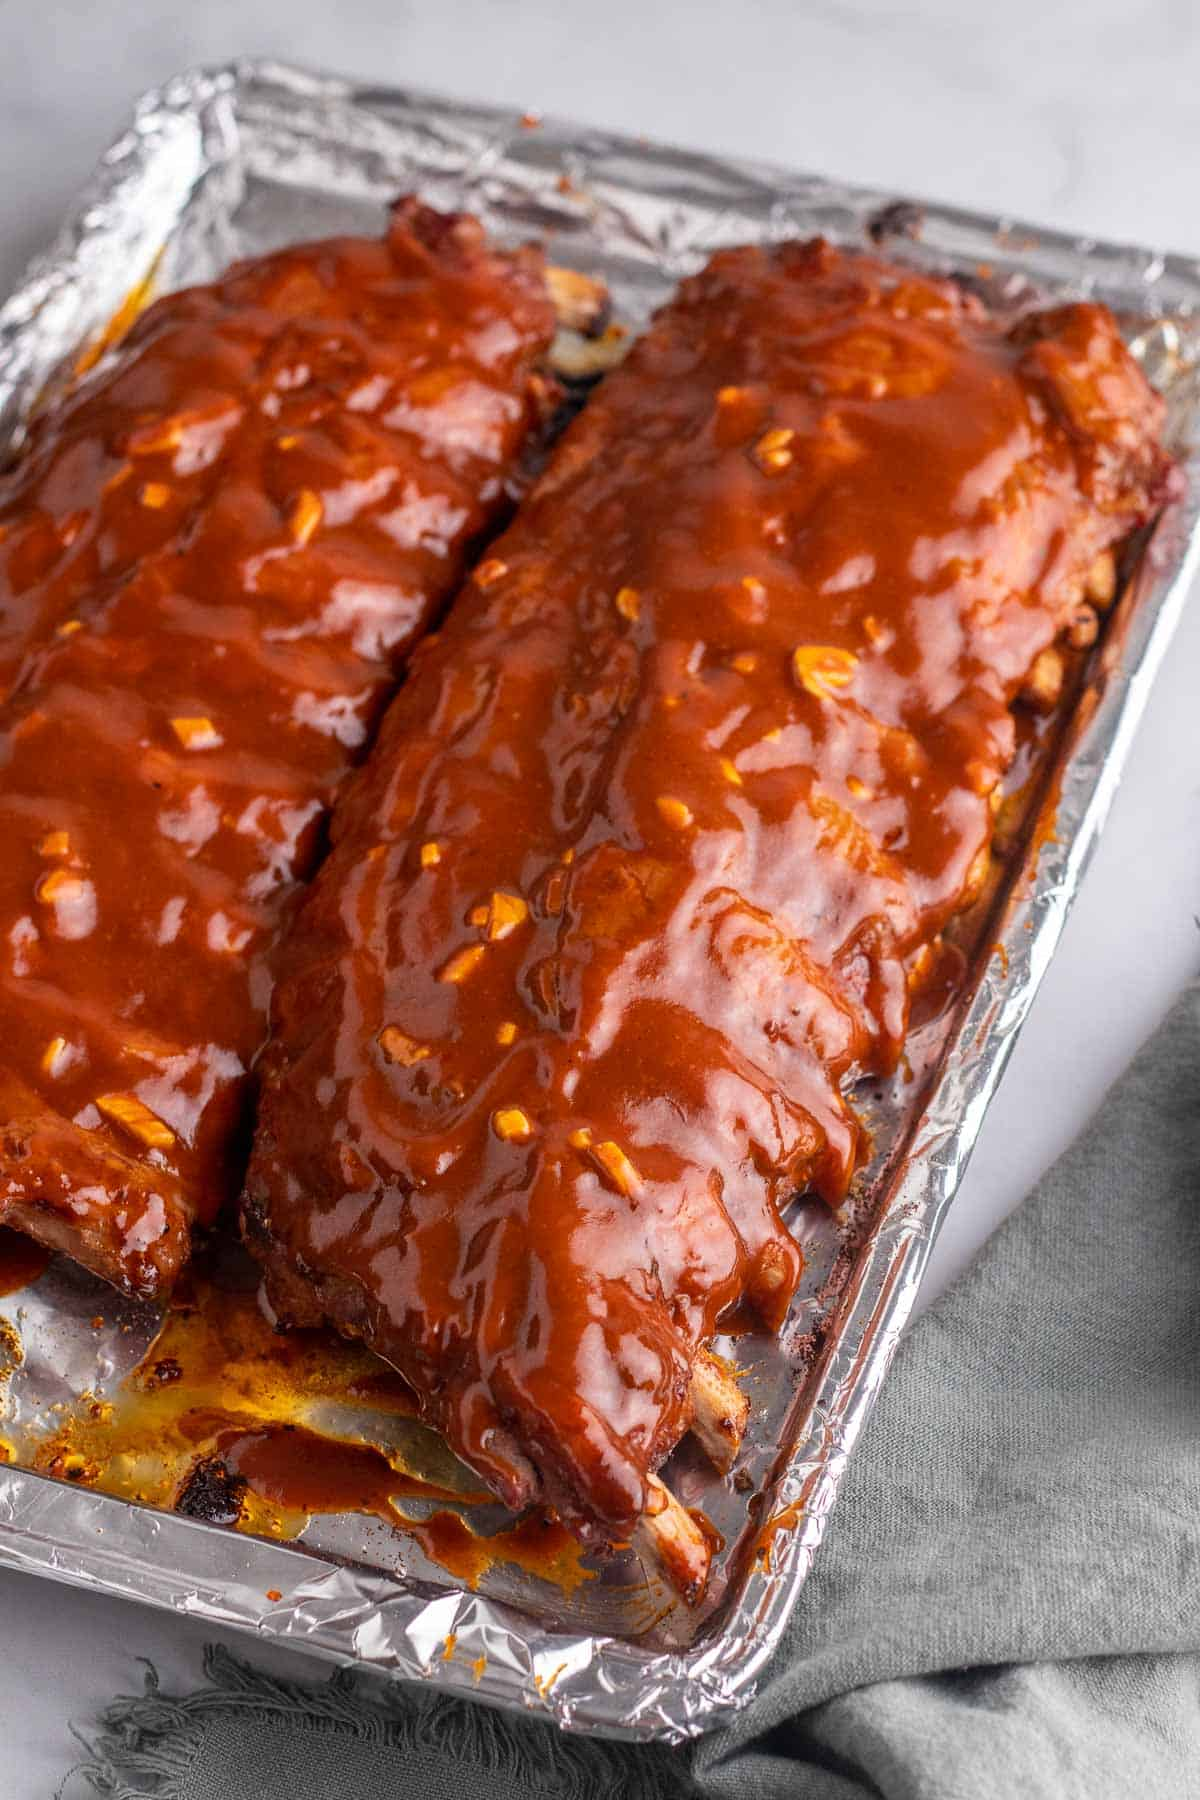 Two racks of ribs basted with barbeque sauce on a baking tray